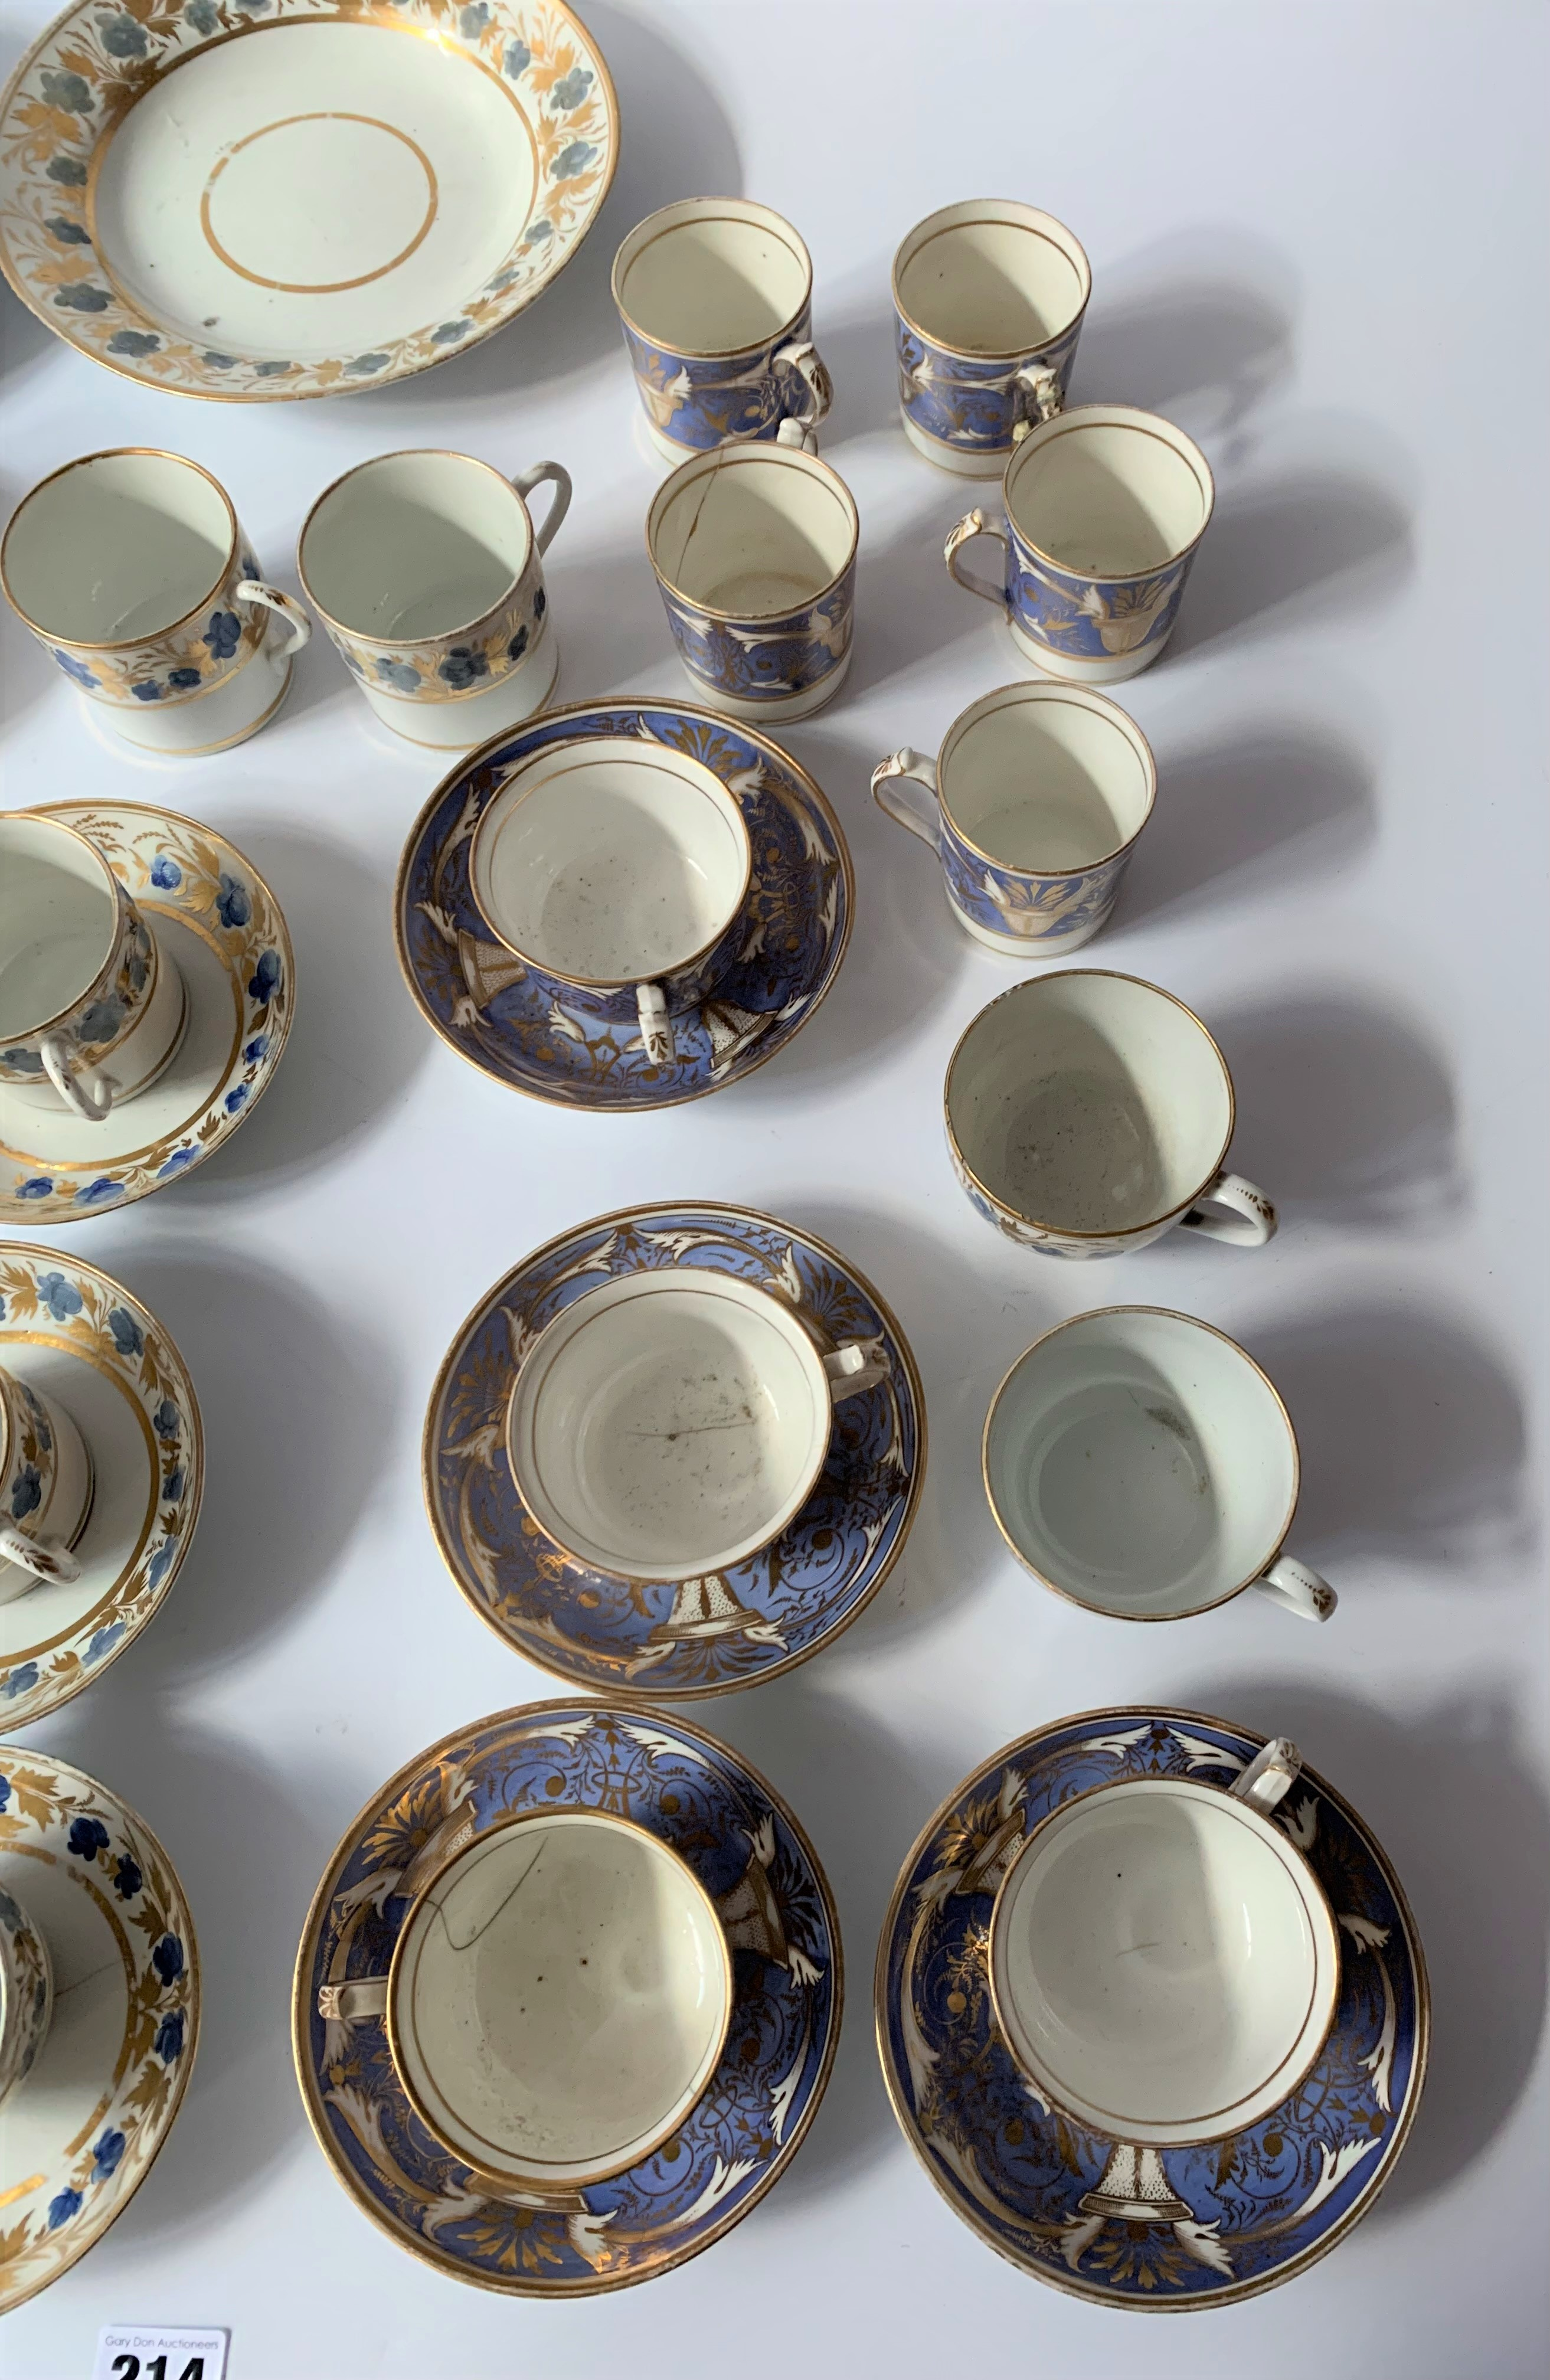 2 part blue/gilt tea and coffee sets - Image 5 of 6